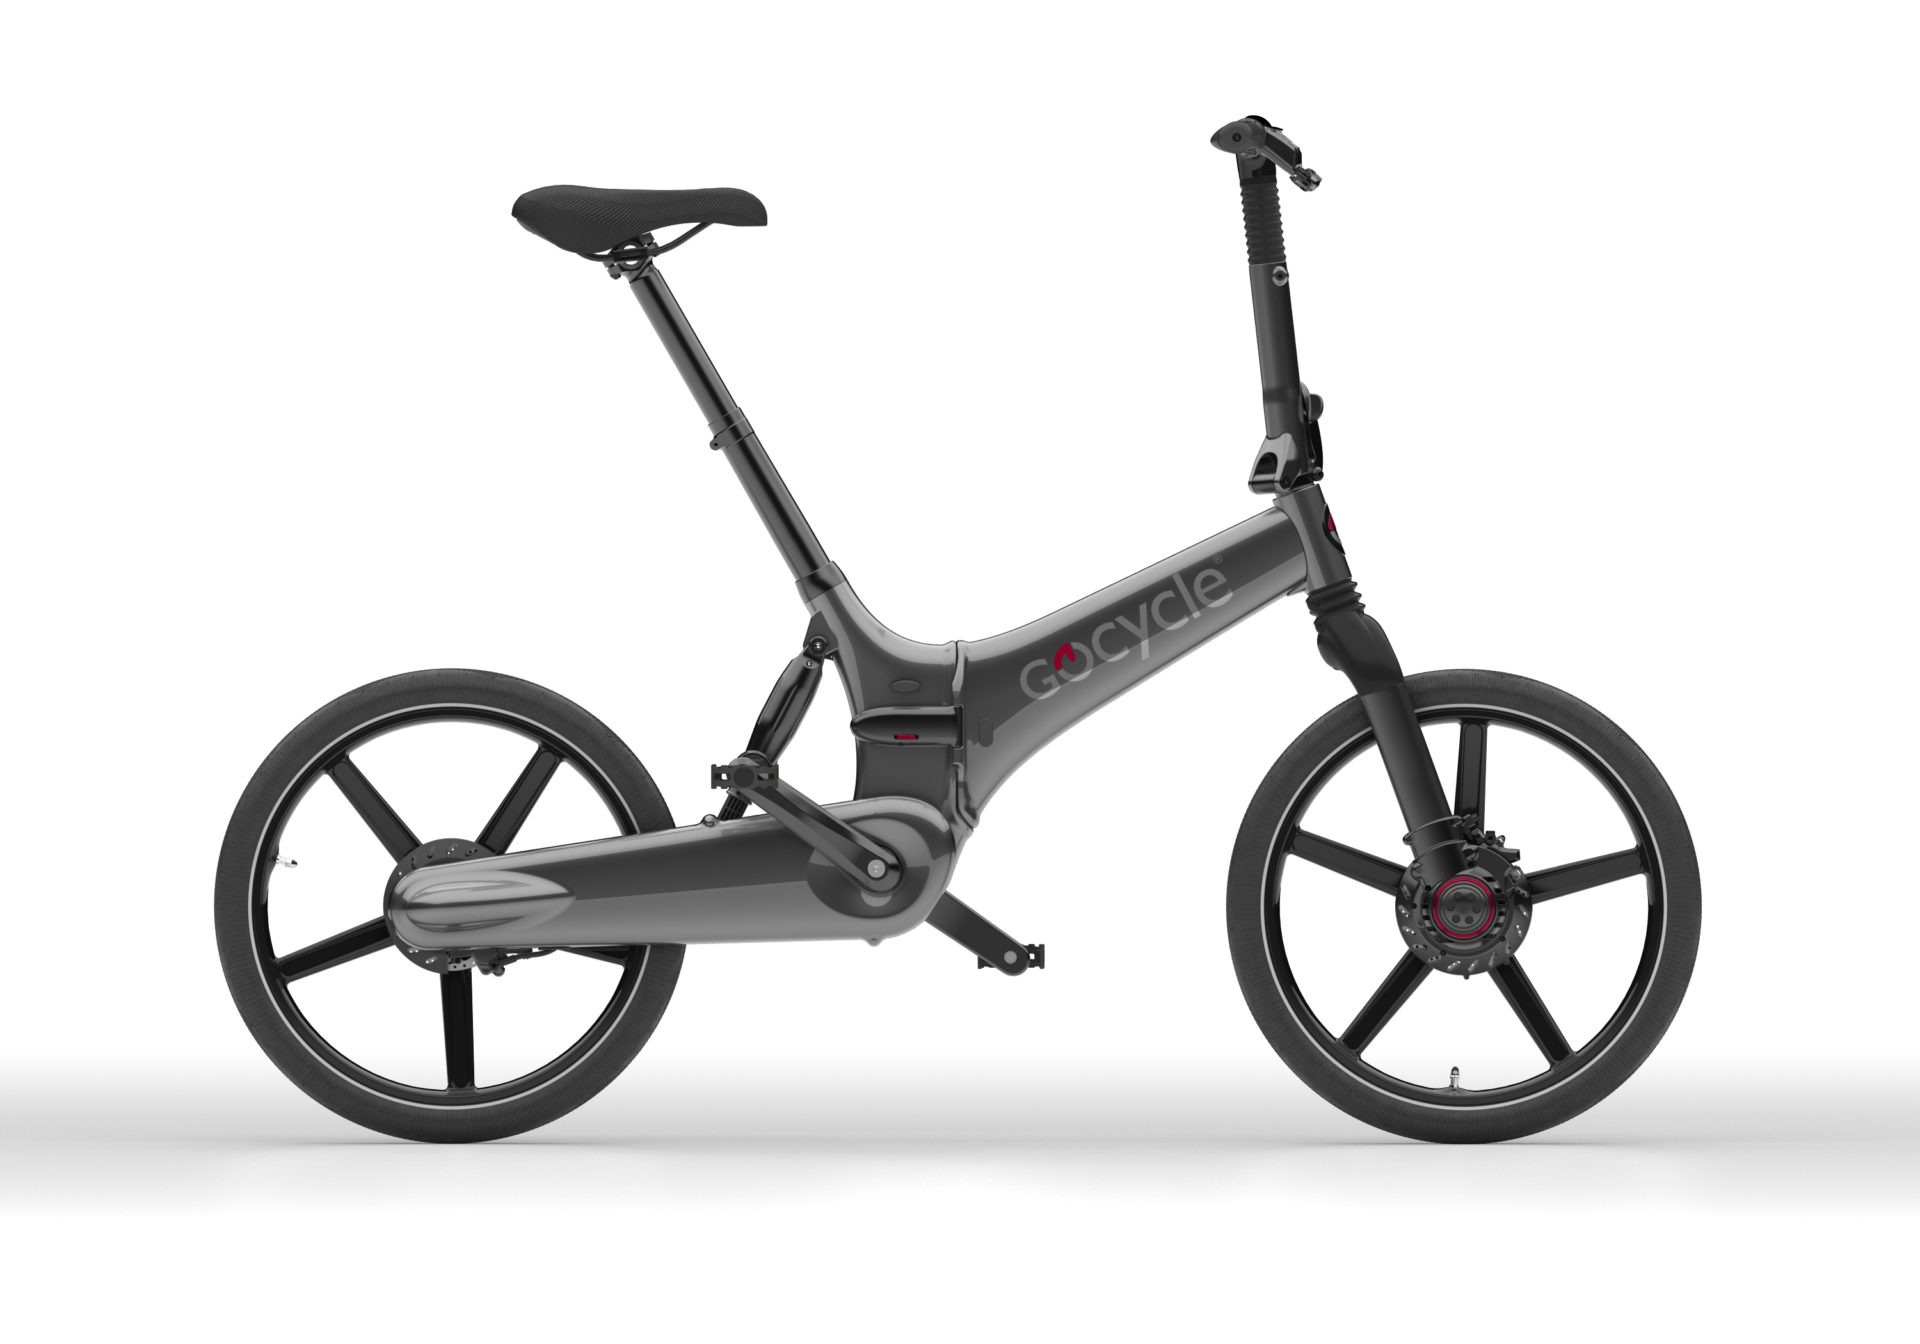 Gocycle GXi - metalno siva